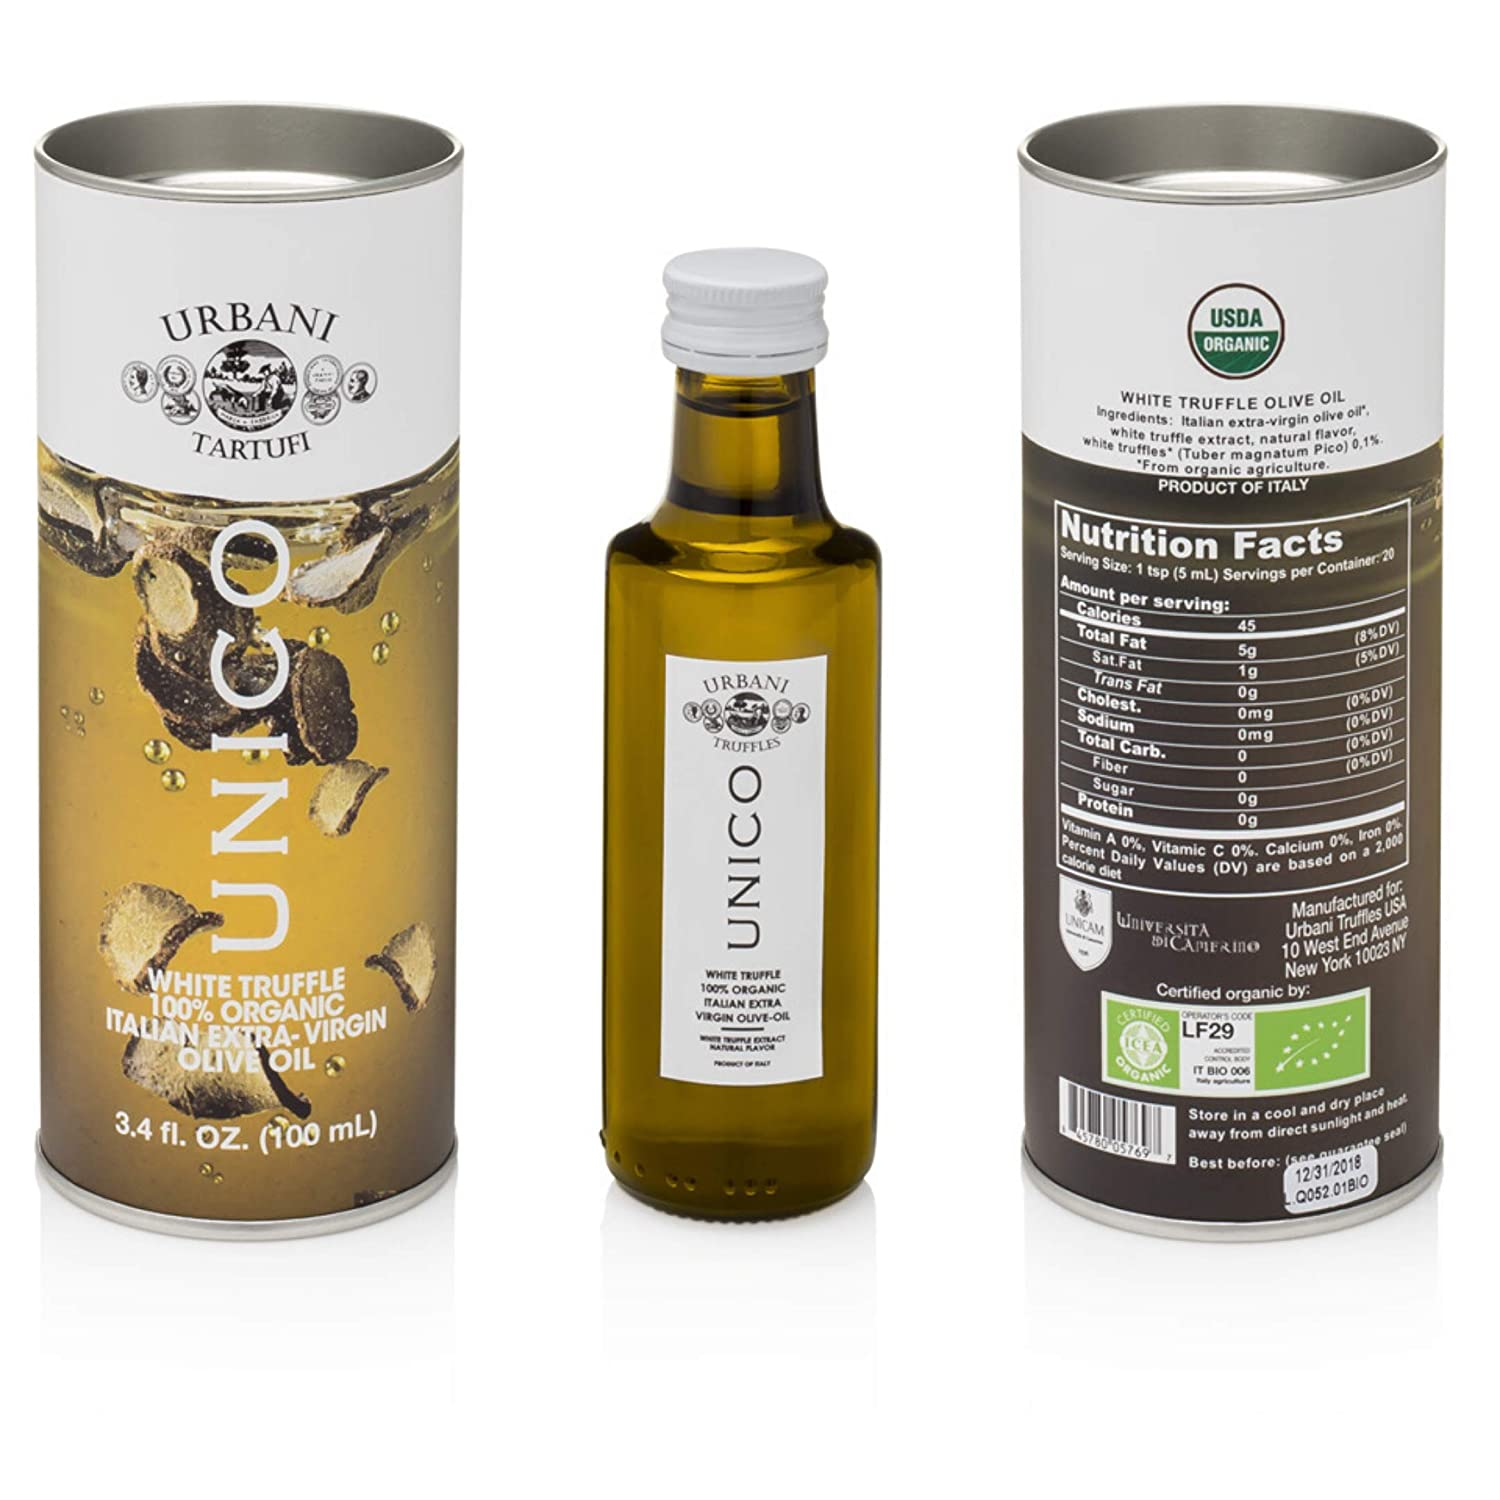 Italian White Truffle Extra Virgin Olive Oil - 3.4 Oz - by Urbani Truffles. Organic Truffle Oil 100% Made In Italy